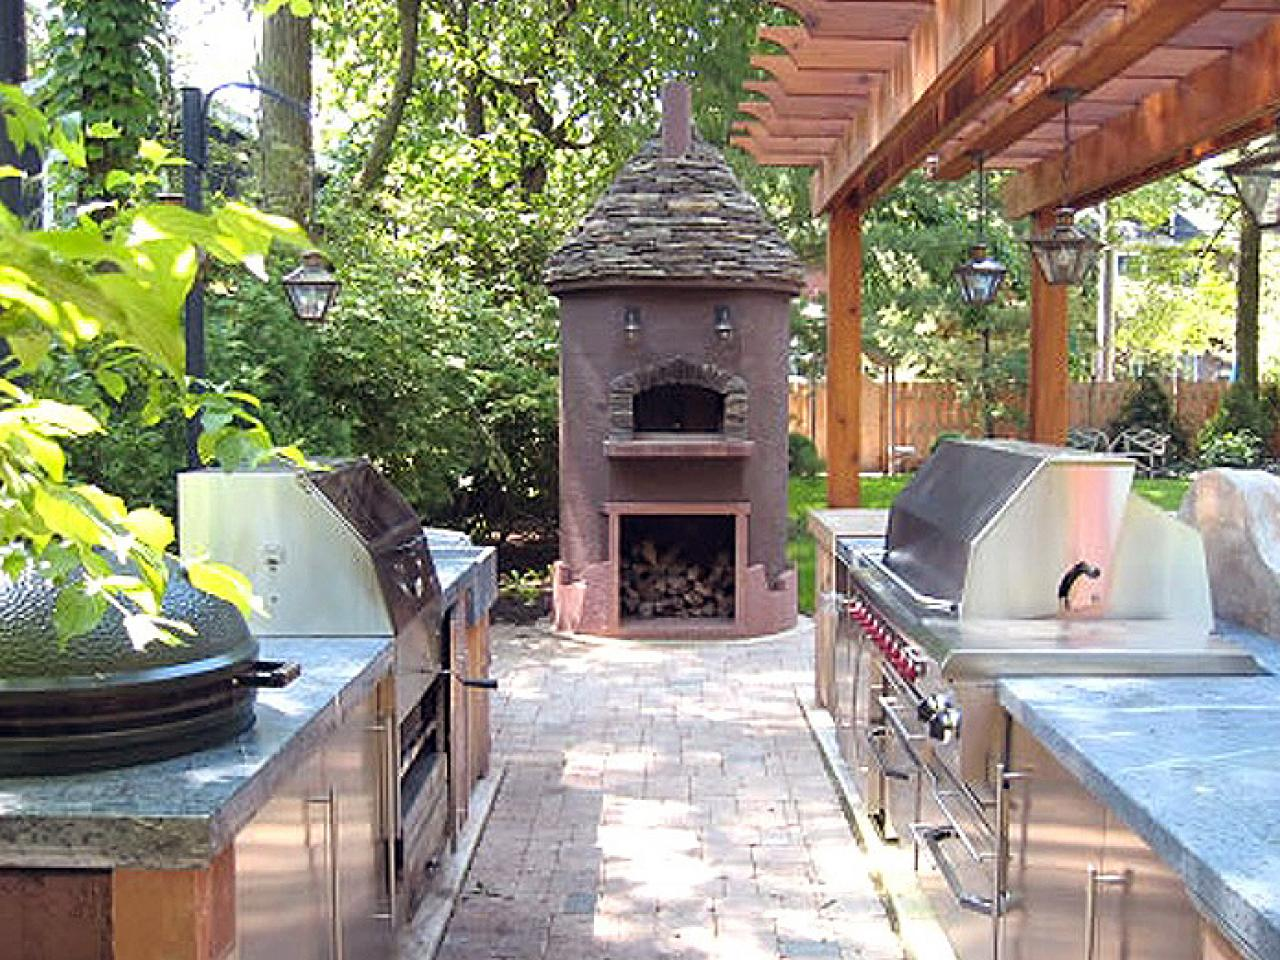 Outdoor Kitchen Bar Ideas Pictures Tips  Expert Advice HGTV - Outdoor kitchen designs with smoker